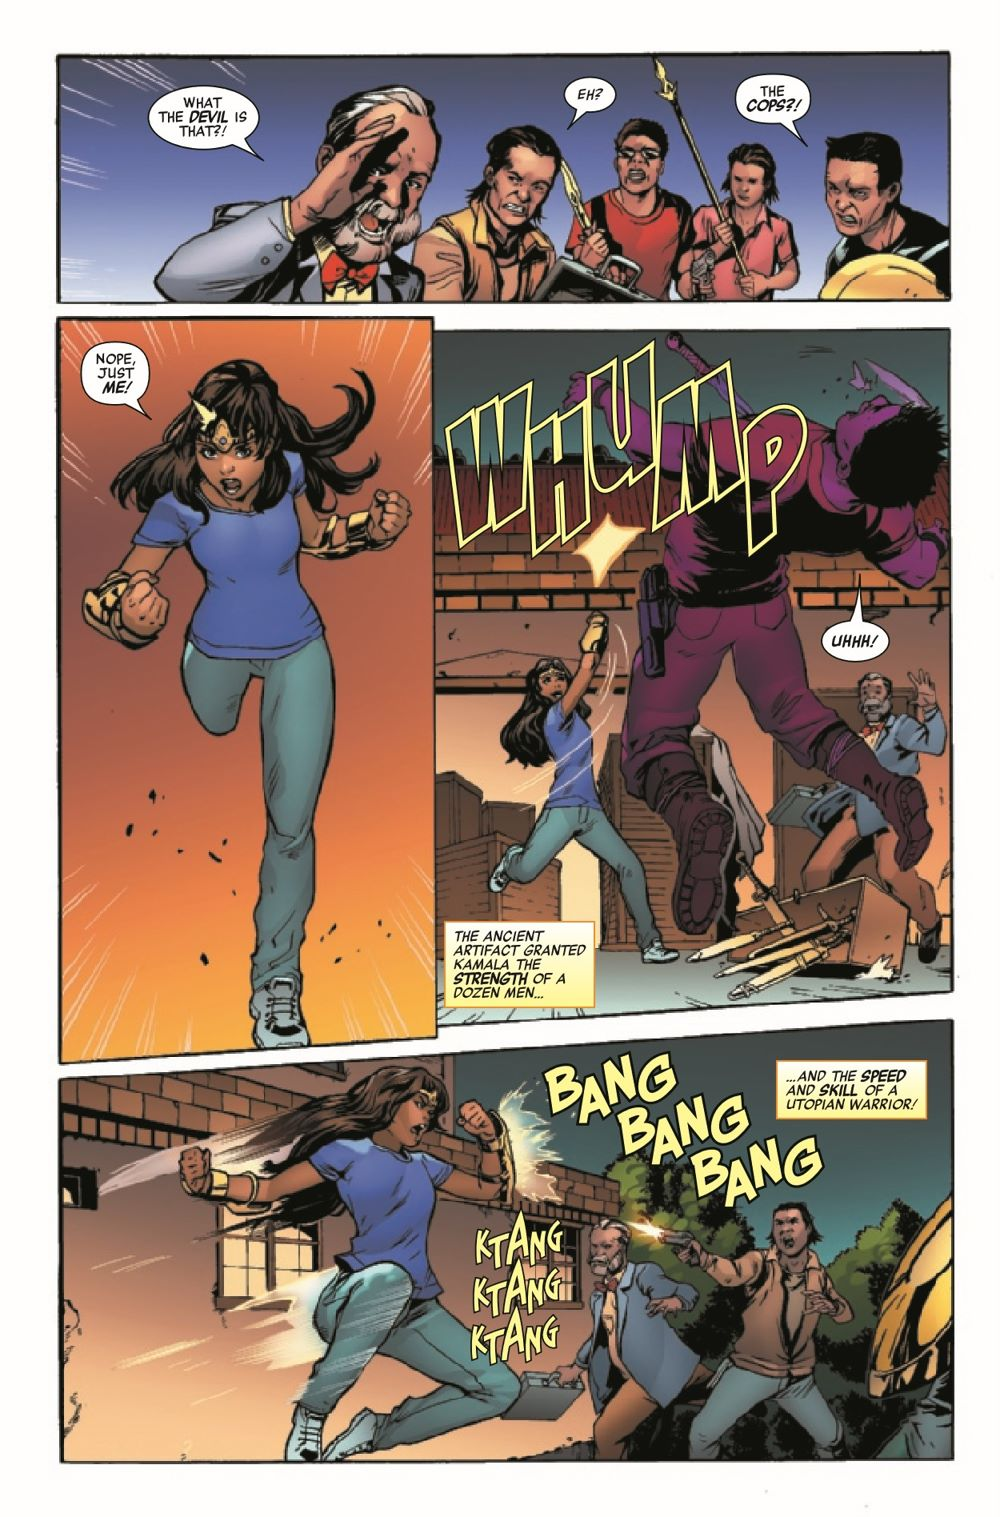 HRYOUNGSQ2021001_Preview-5 ComicList Previews: HEROES REBORN YOUNG SQUADRON #1